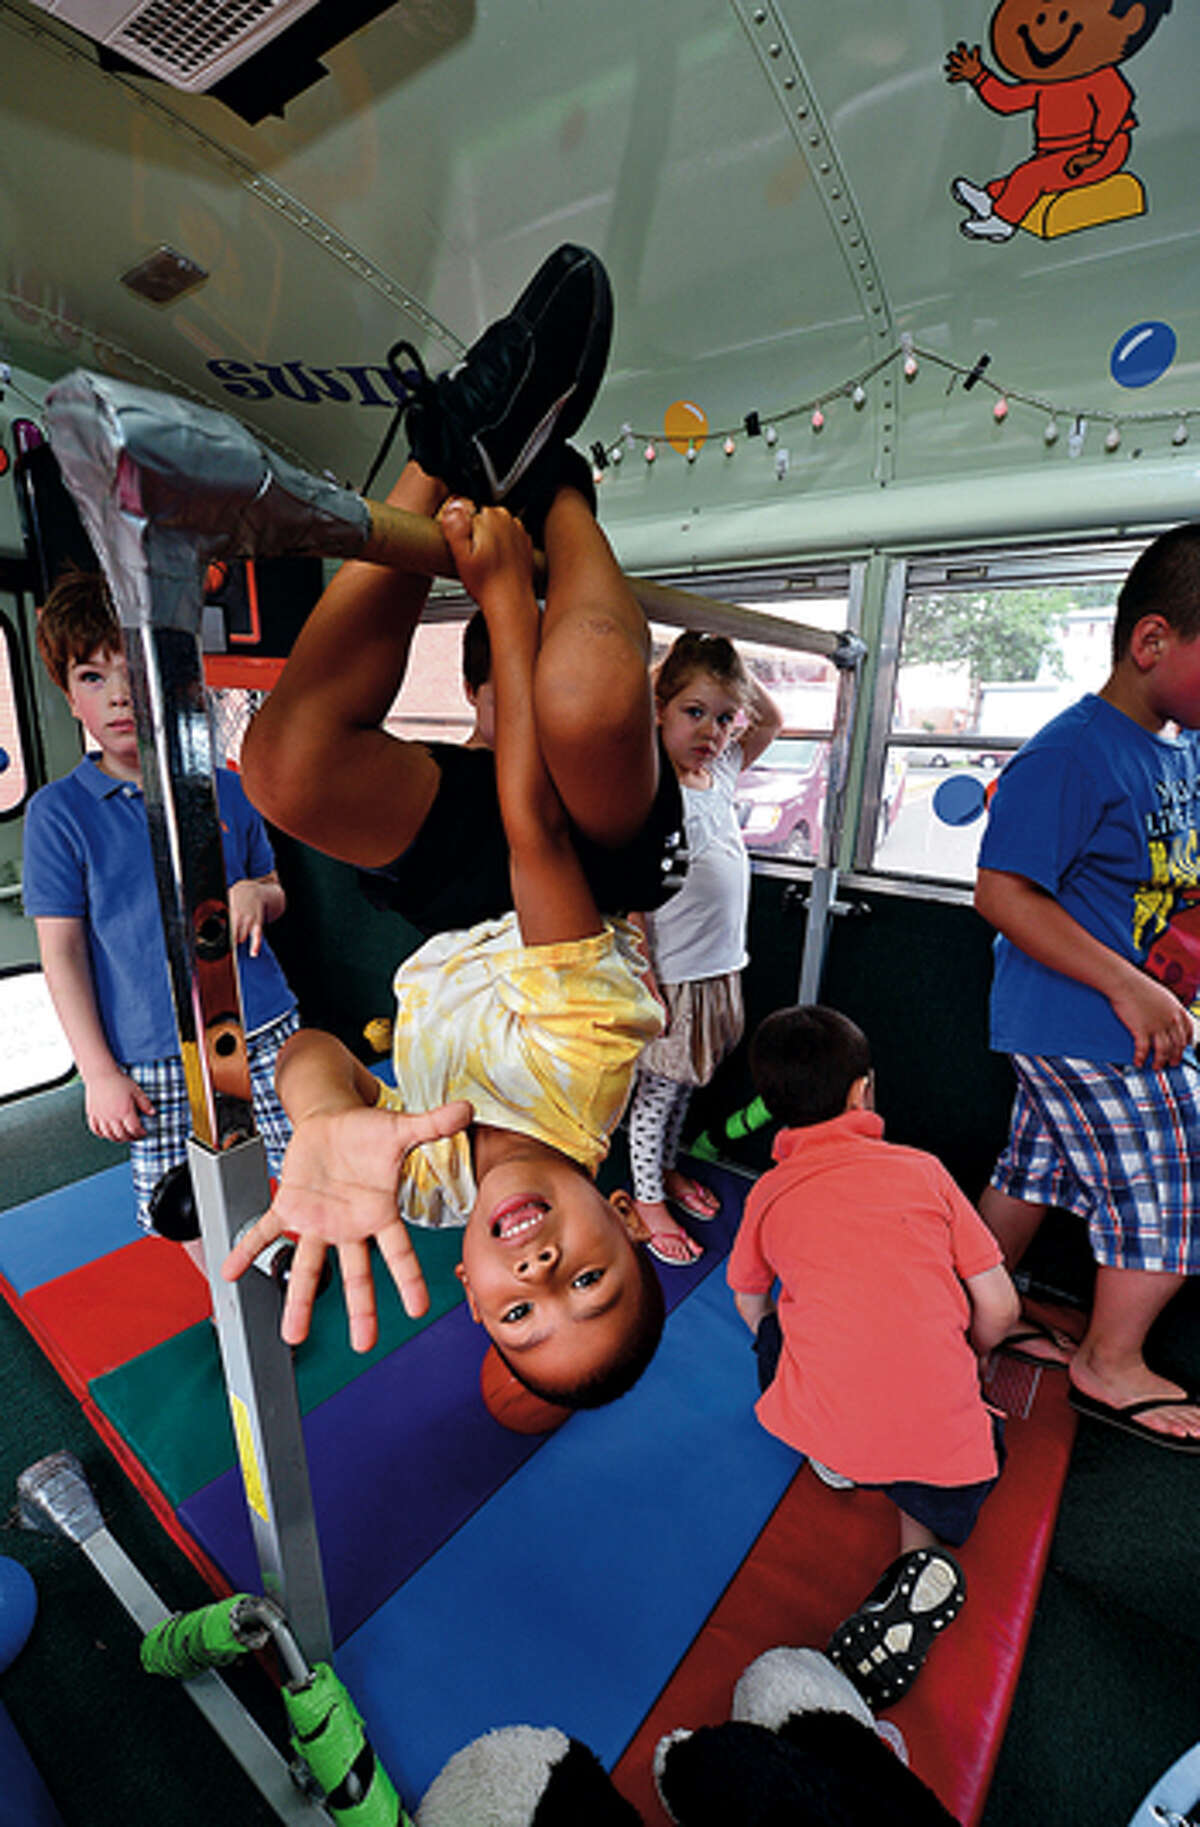 Christian Young, 5, plays in the Fun Bus Friday when the mobile gymnasium came to the Norwalk Public Library courtesy of the library's children's department. Hour photo / Erik Trautmann